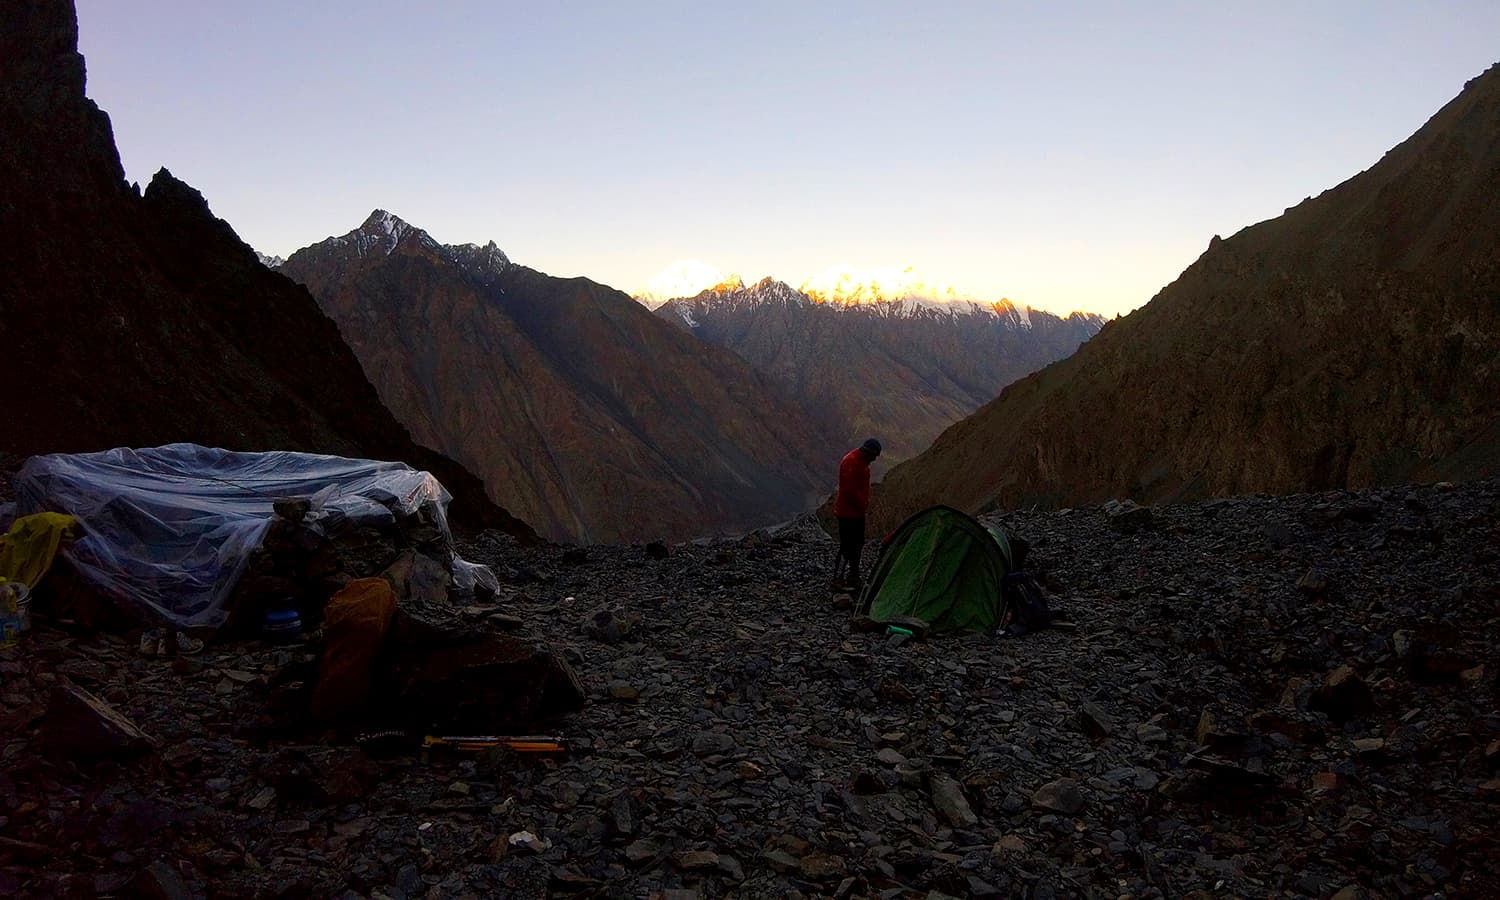 Day 5: Advanced Base Camp at 4,556m.